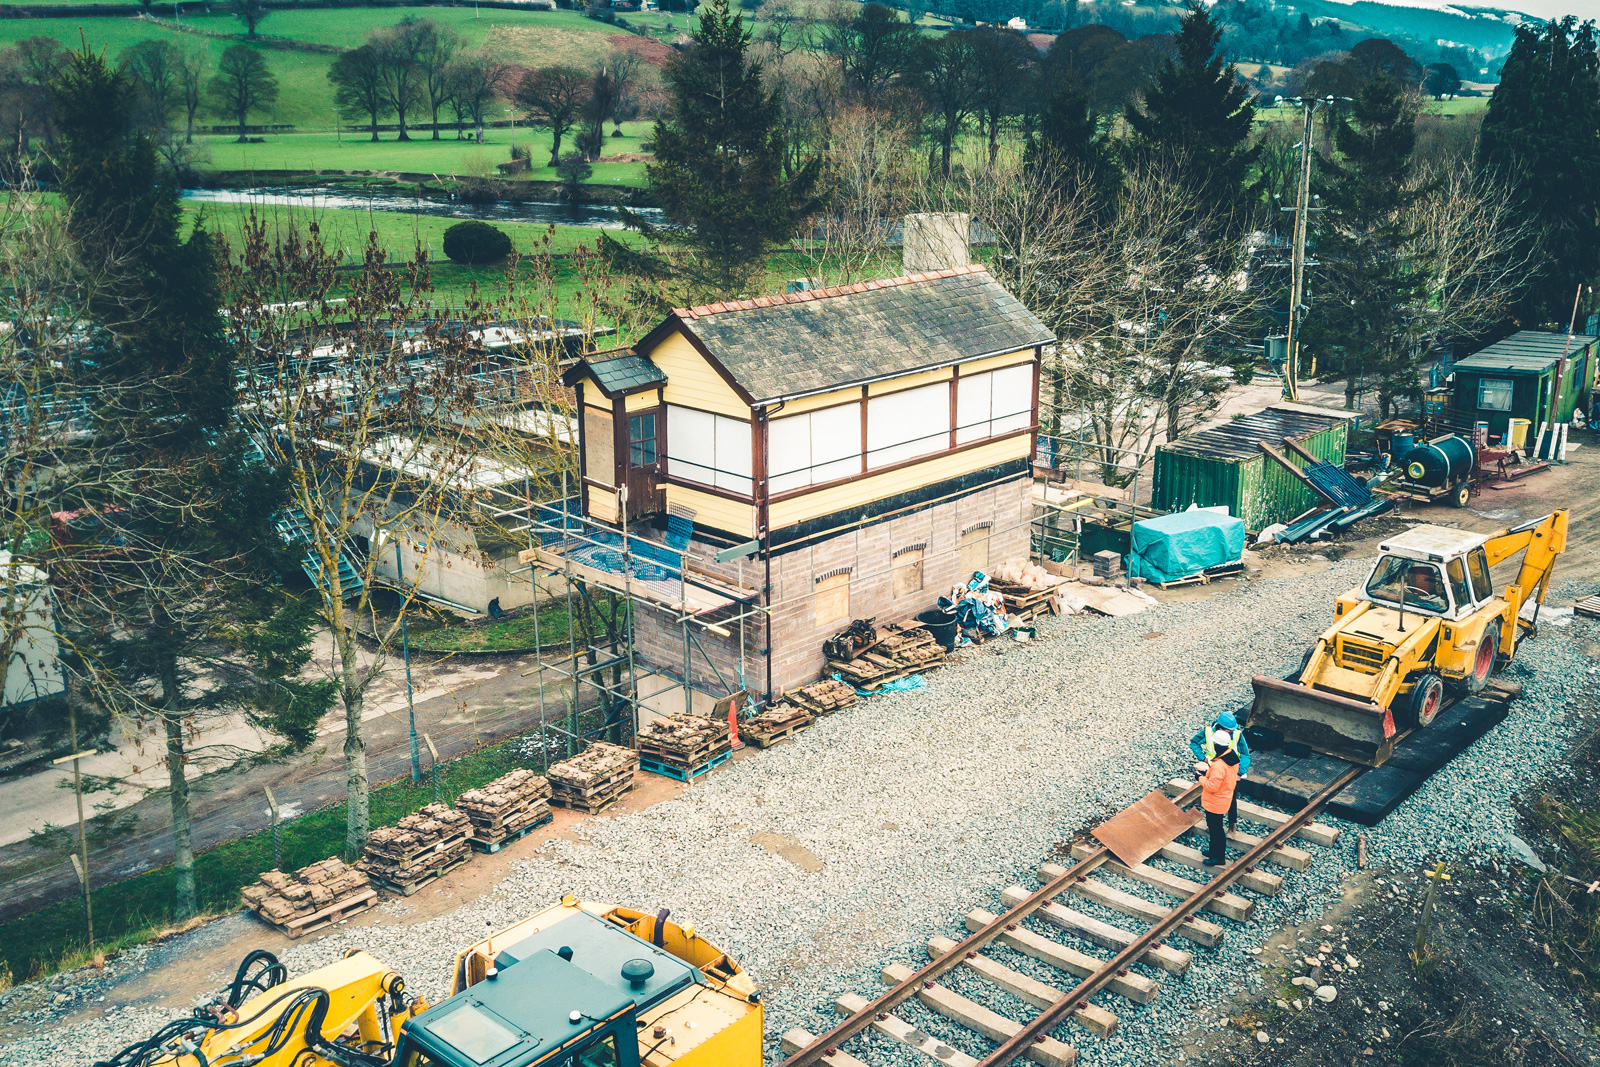 Construction on Llangollen Railway carried out by Evans Wolfenden Partnership